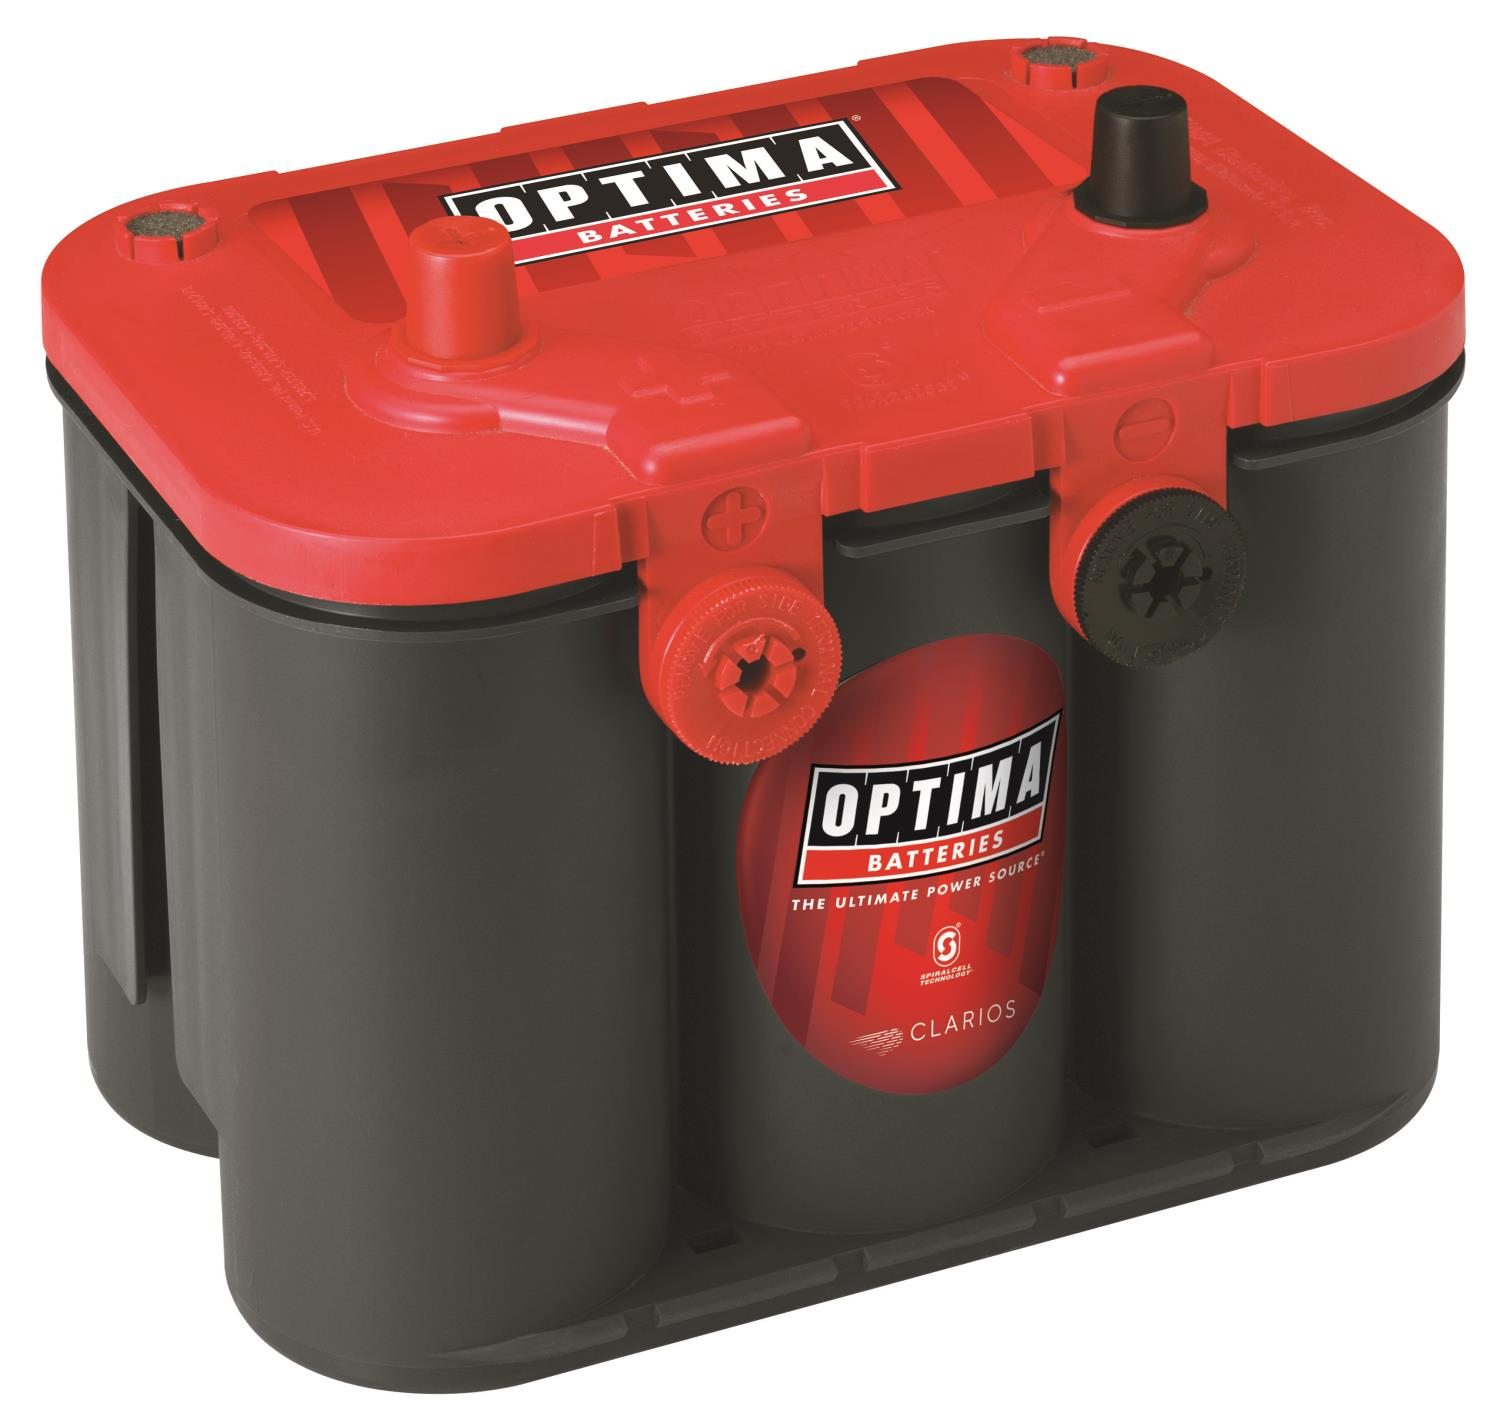 Optima Batteries 9004-003 - Optima RedTop Batteries